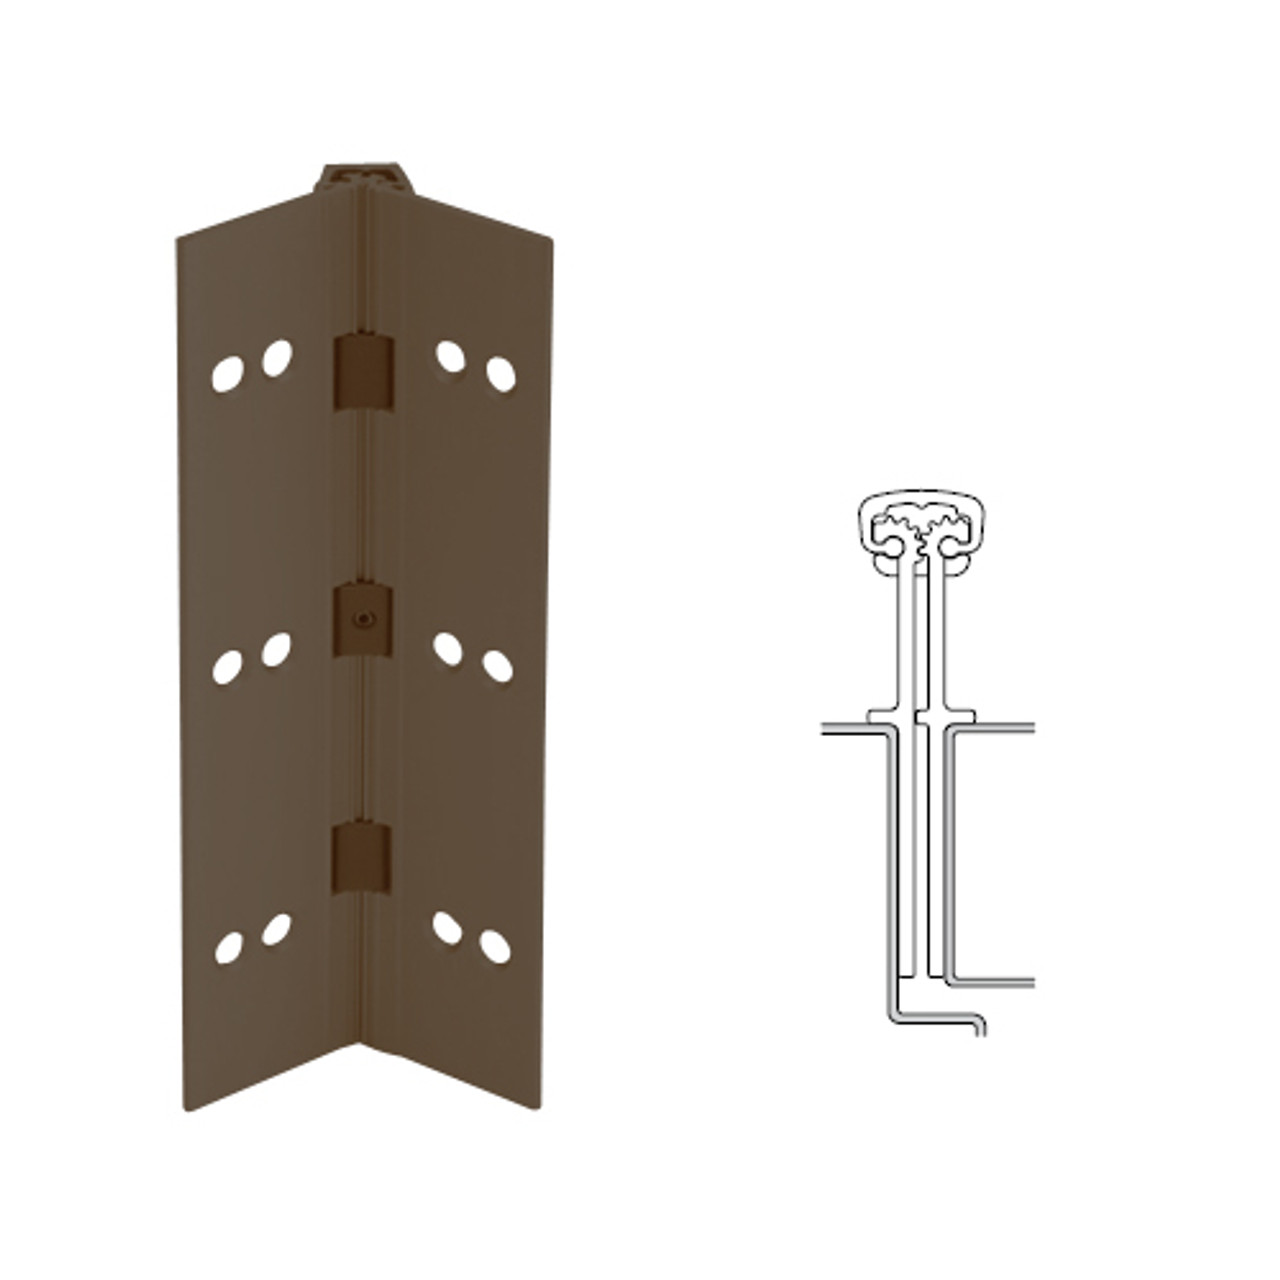 040XY-313AN-120-SECWDWD IVES Full Mortise Continuous Geared Hinges with Security Screws - Hex Pin Drive in Dark Bronze Anodized